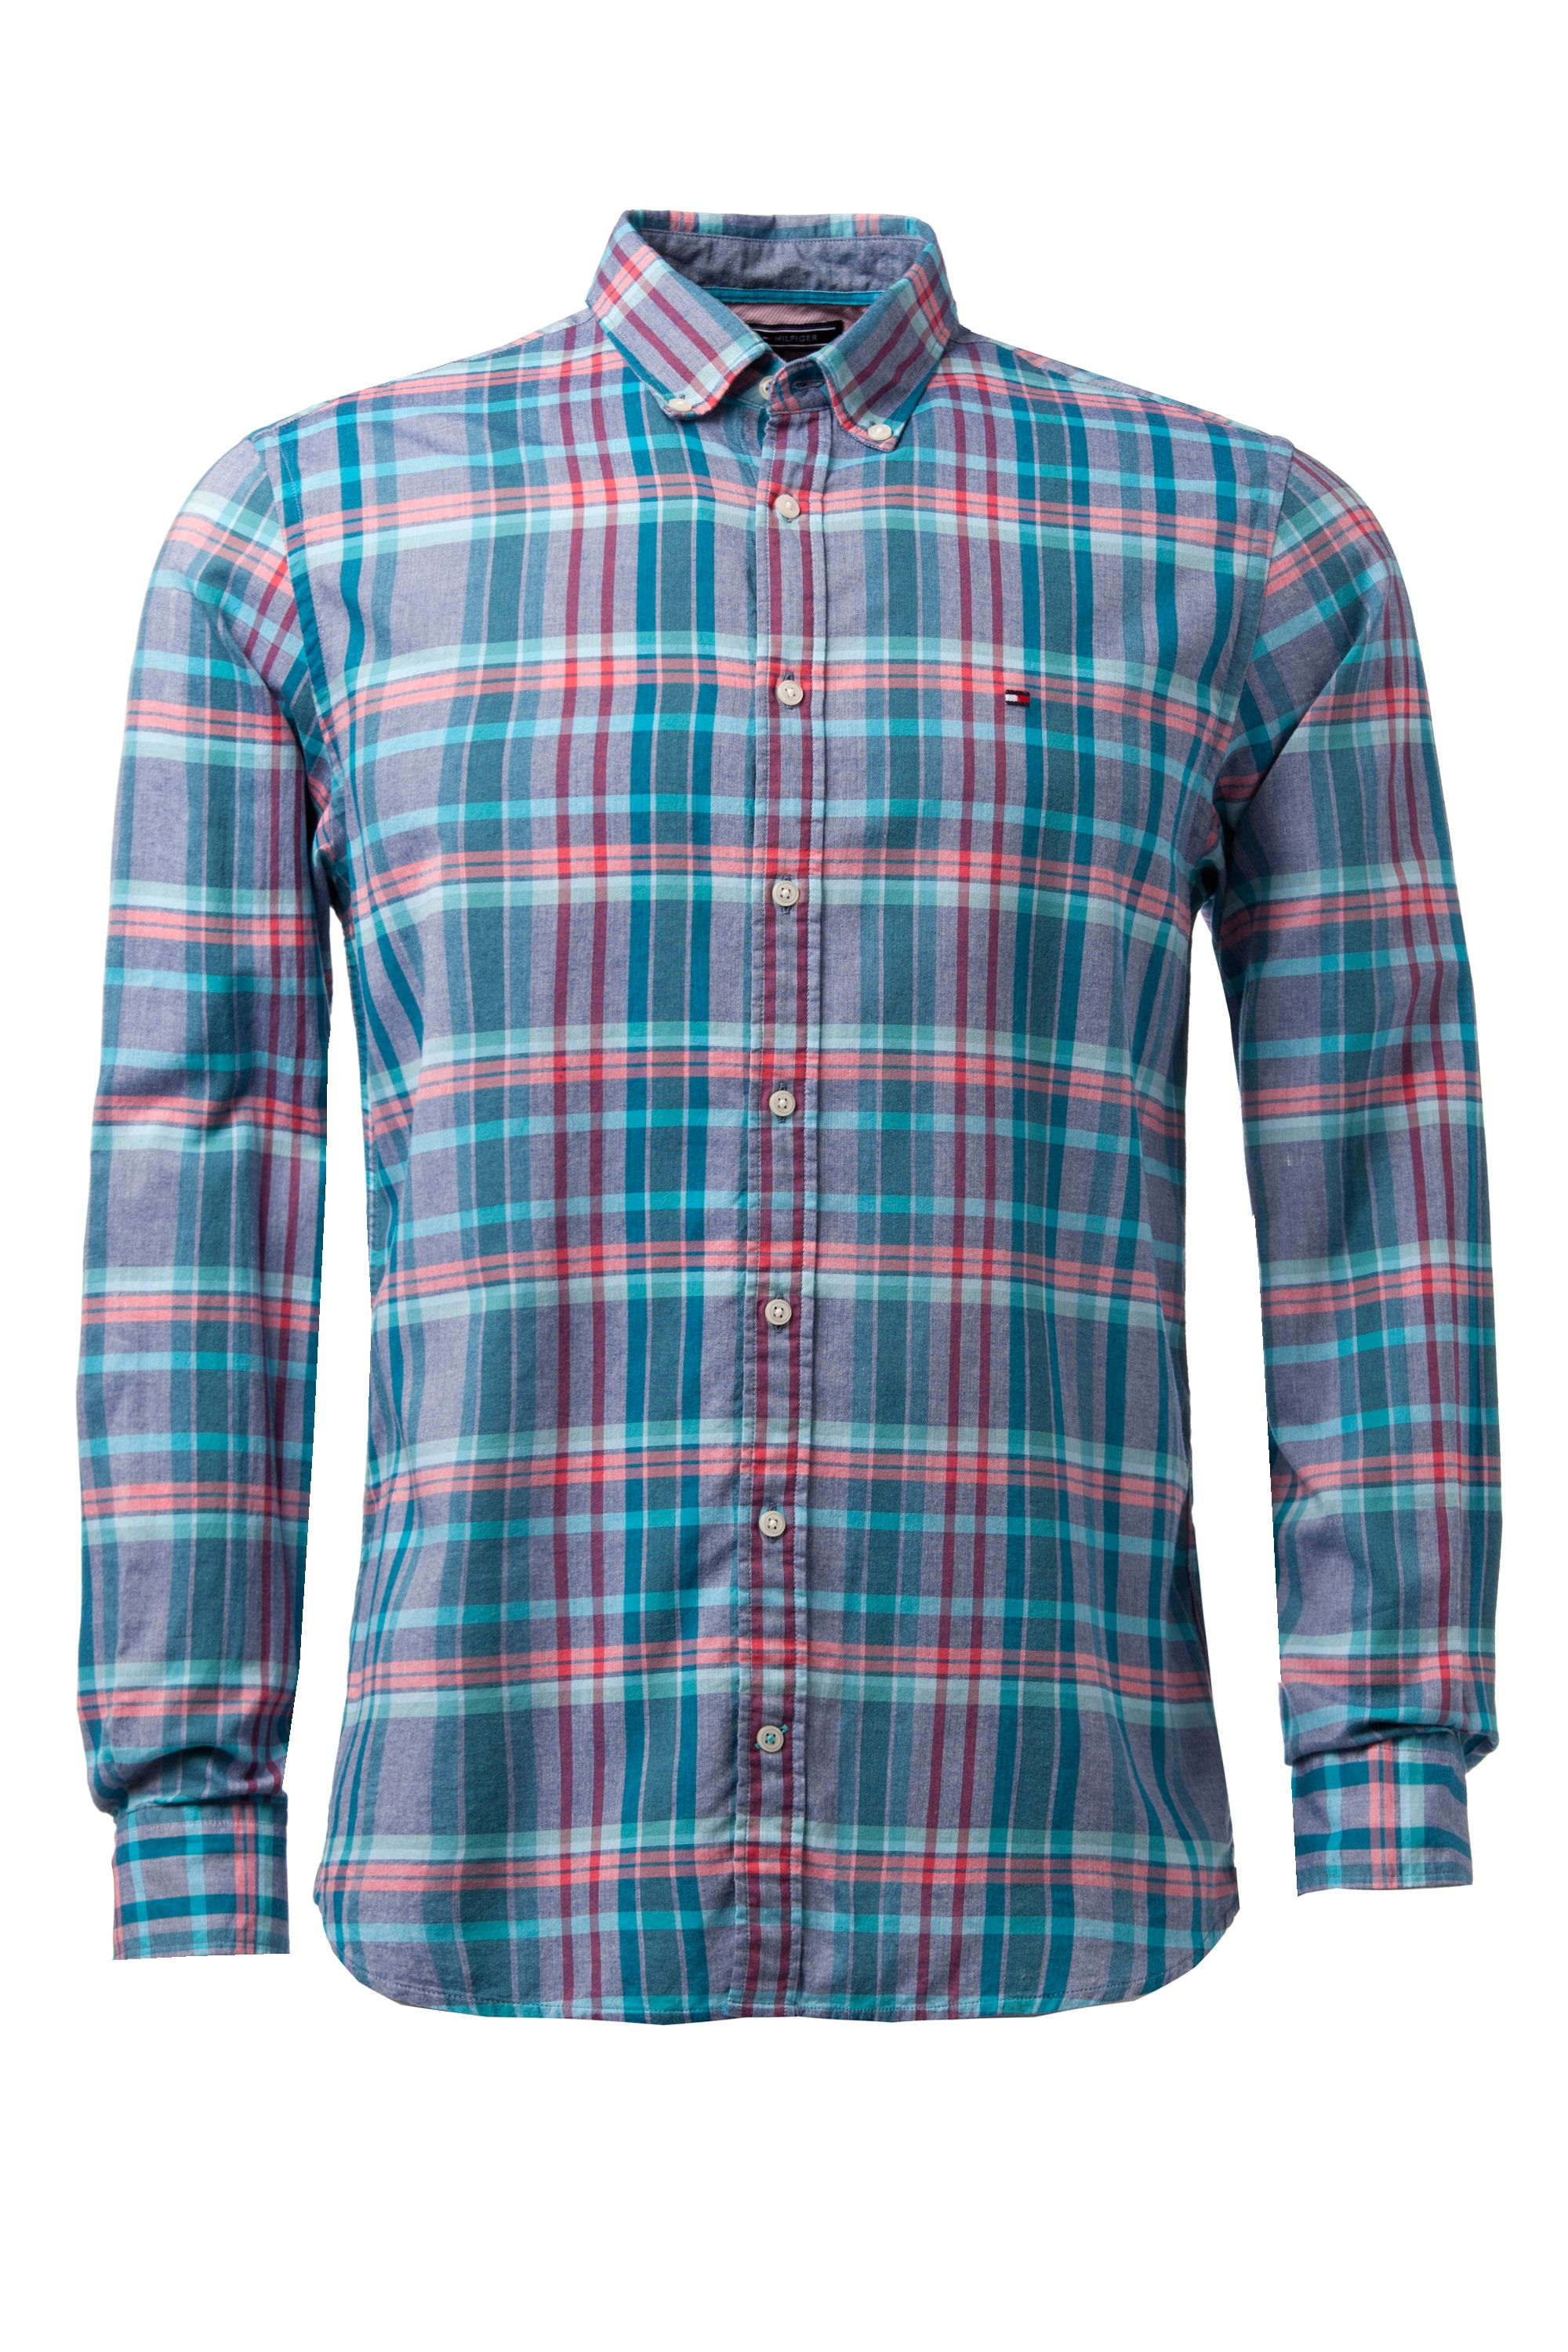 Tommy hilfiger blue emery check classic fit shirt for for Tommy hilfiger vintage fit shirt